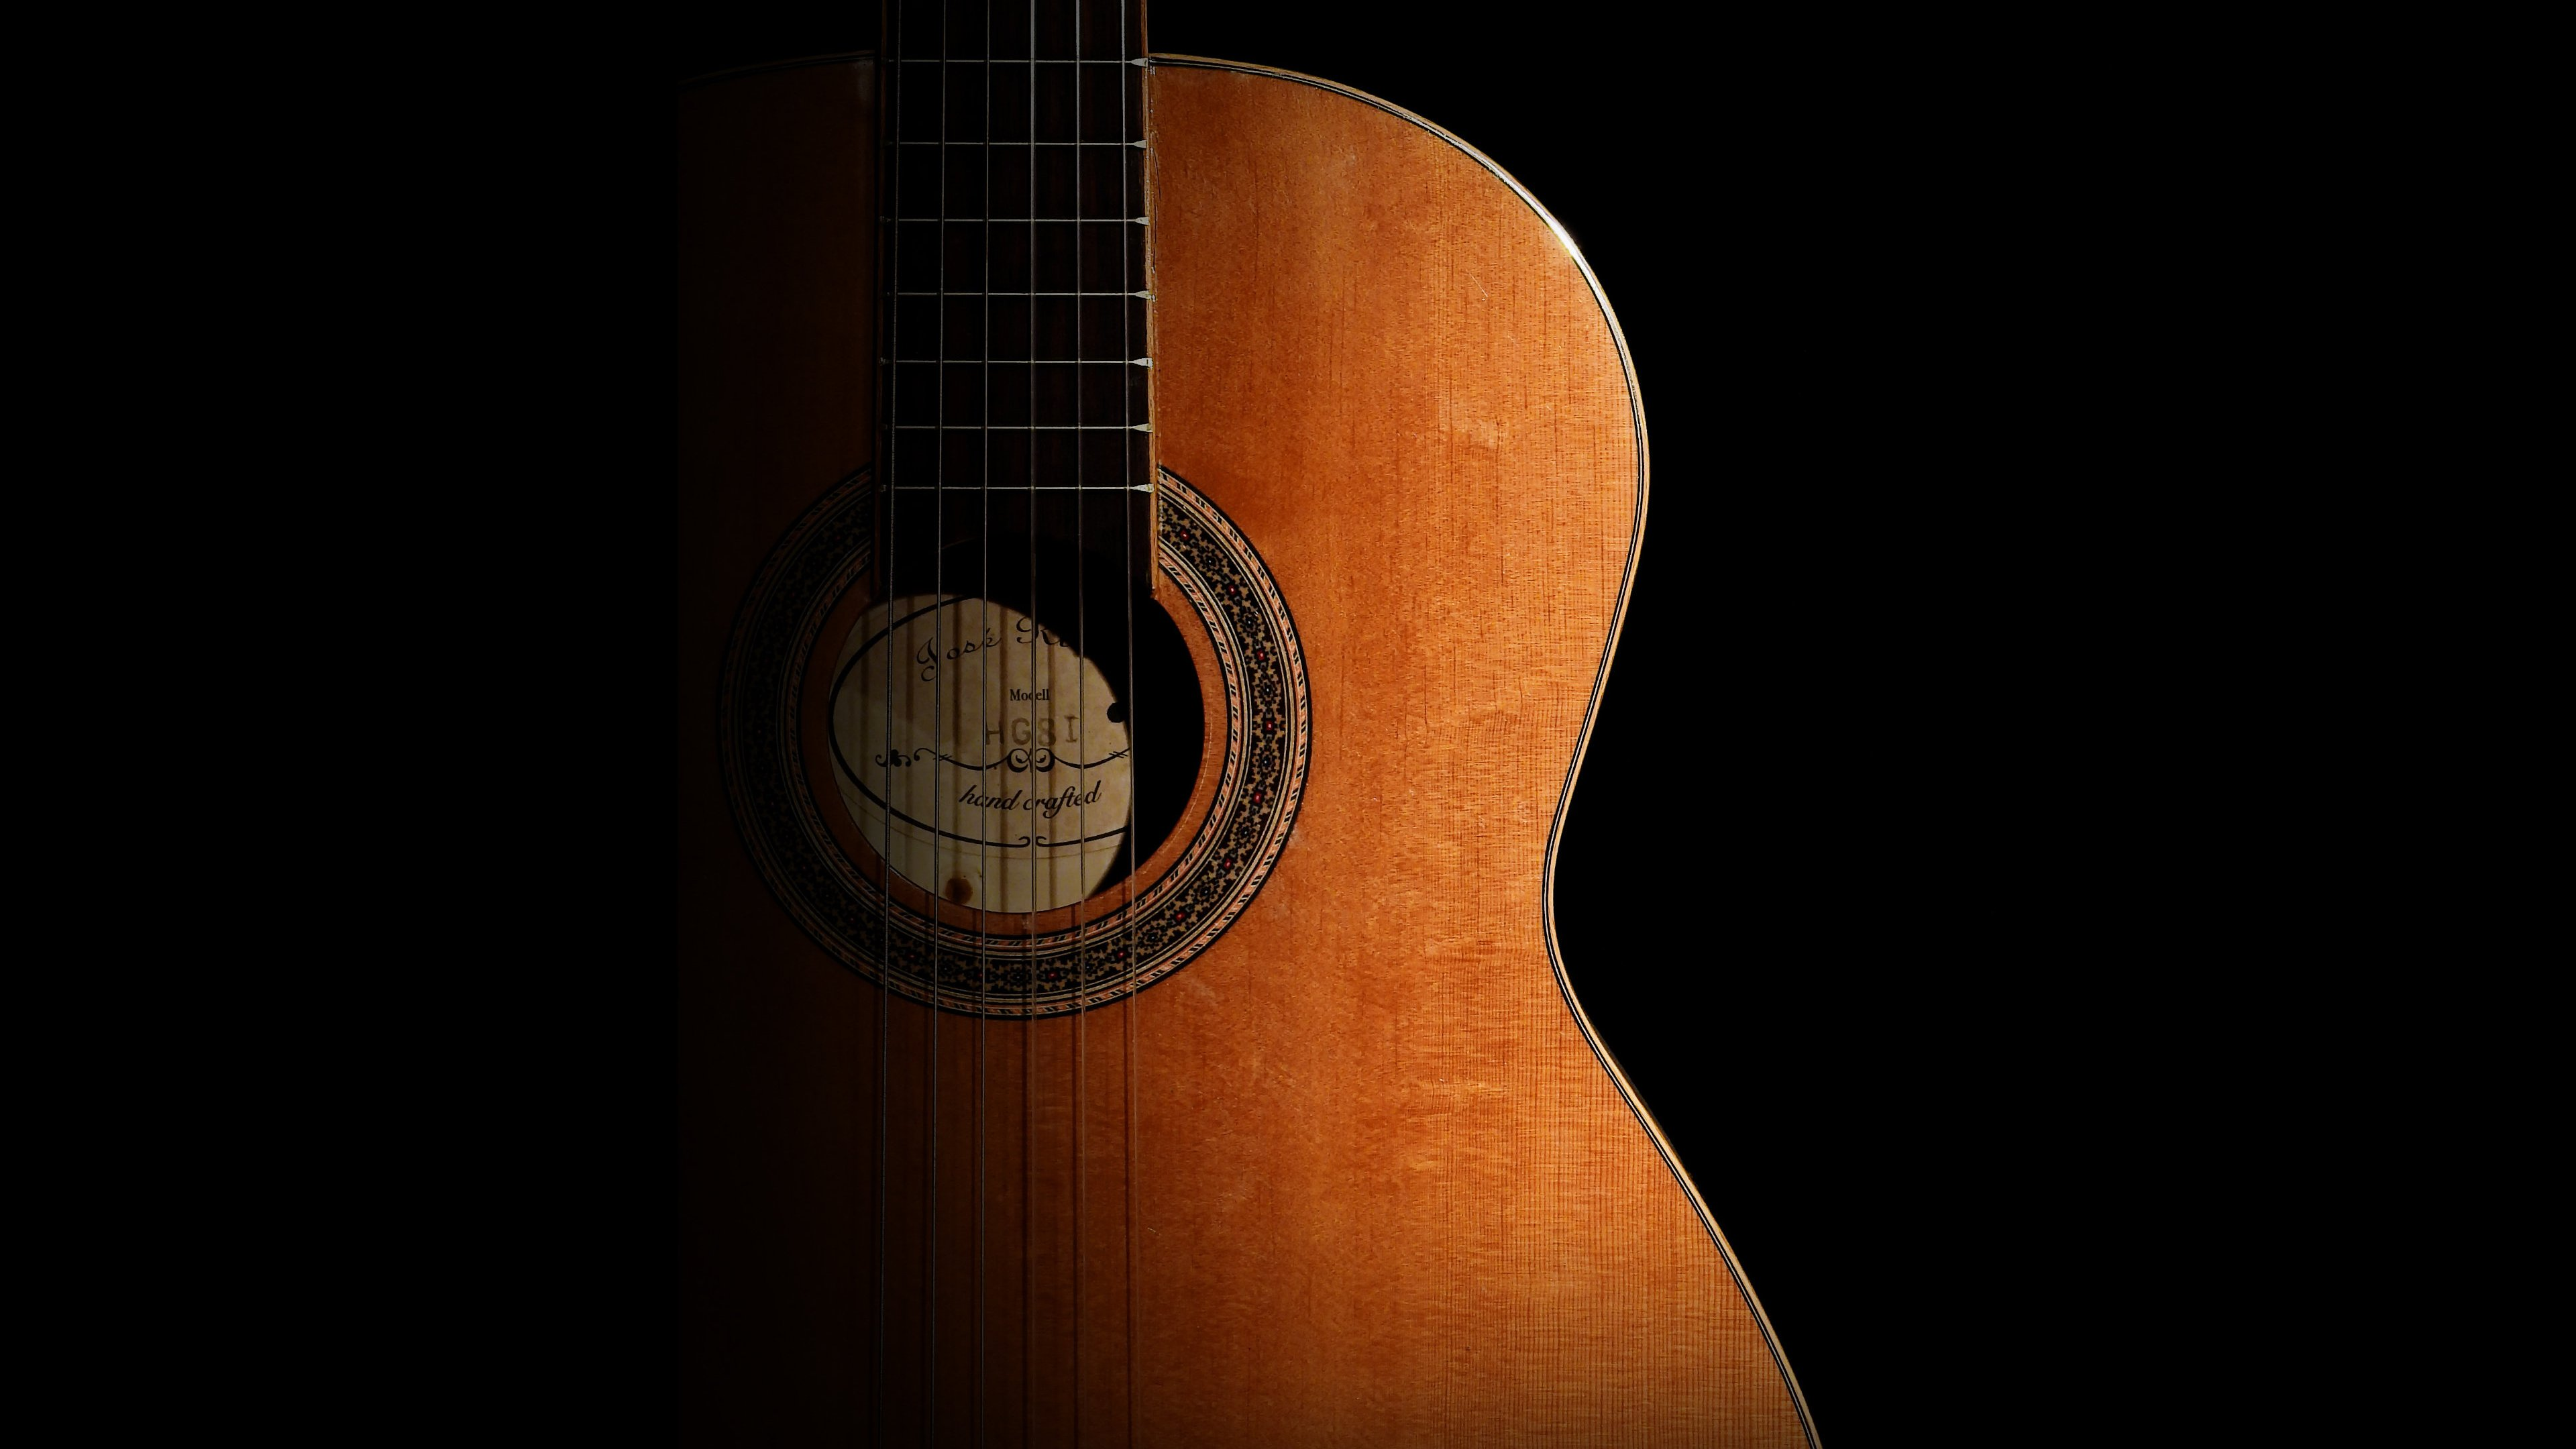 Guitar Wallpaper Mobile Desktop Background